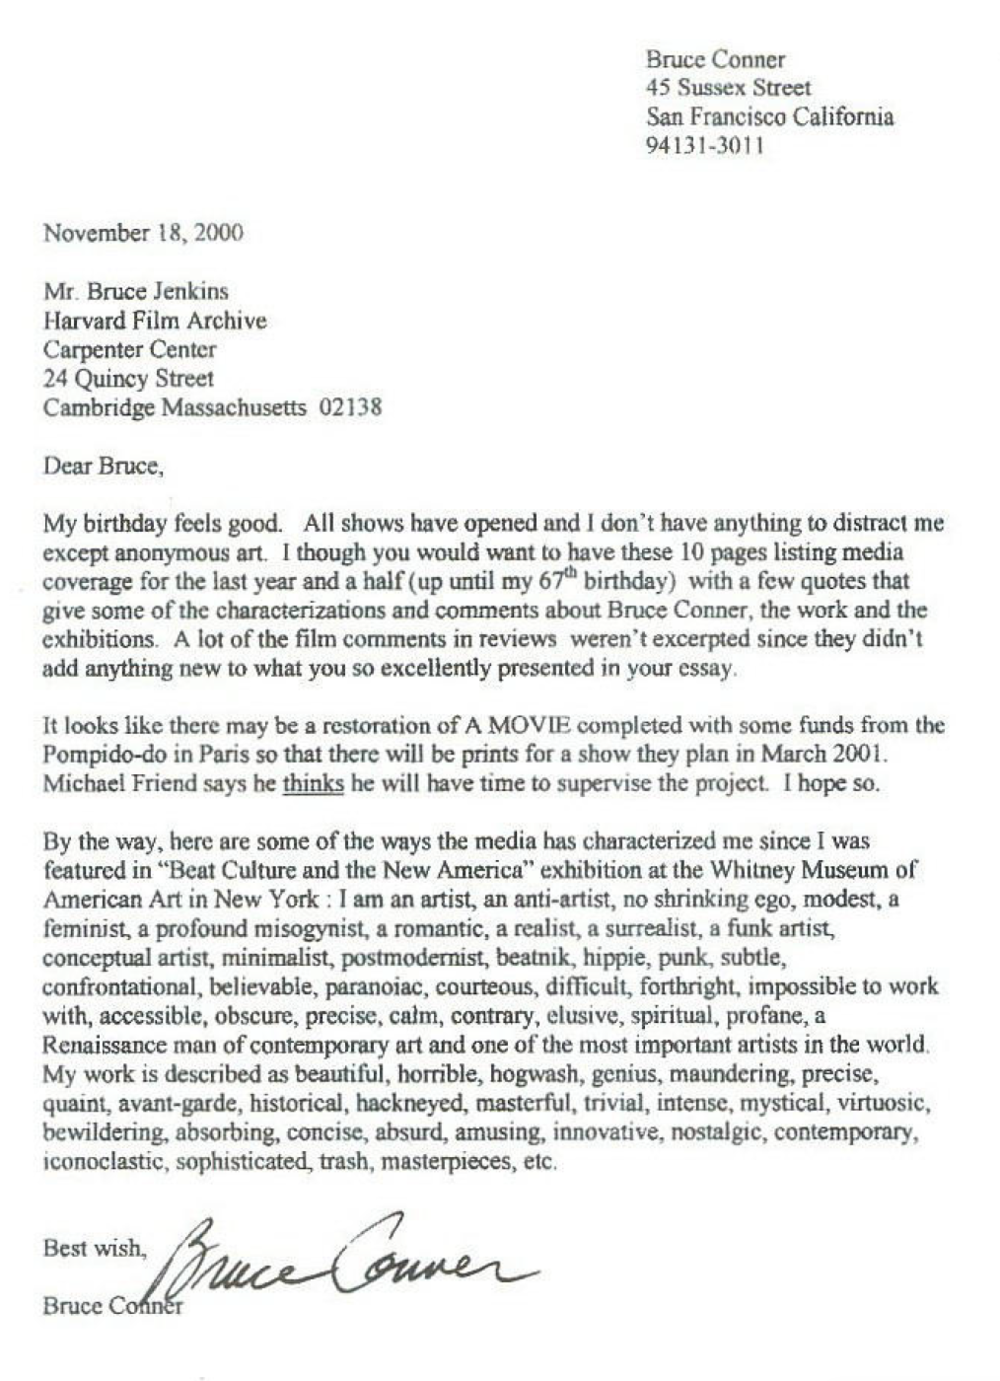 Fax from Bruce Conner to Bruce Jenkins November 18, 2000.